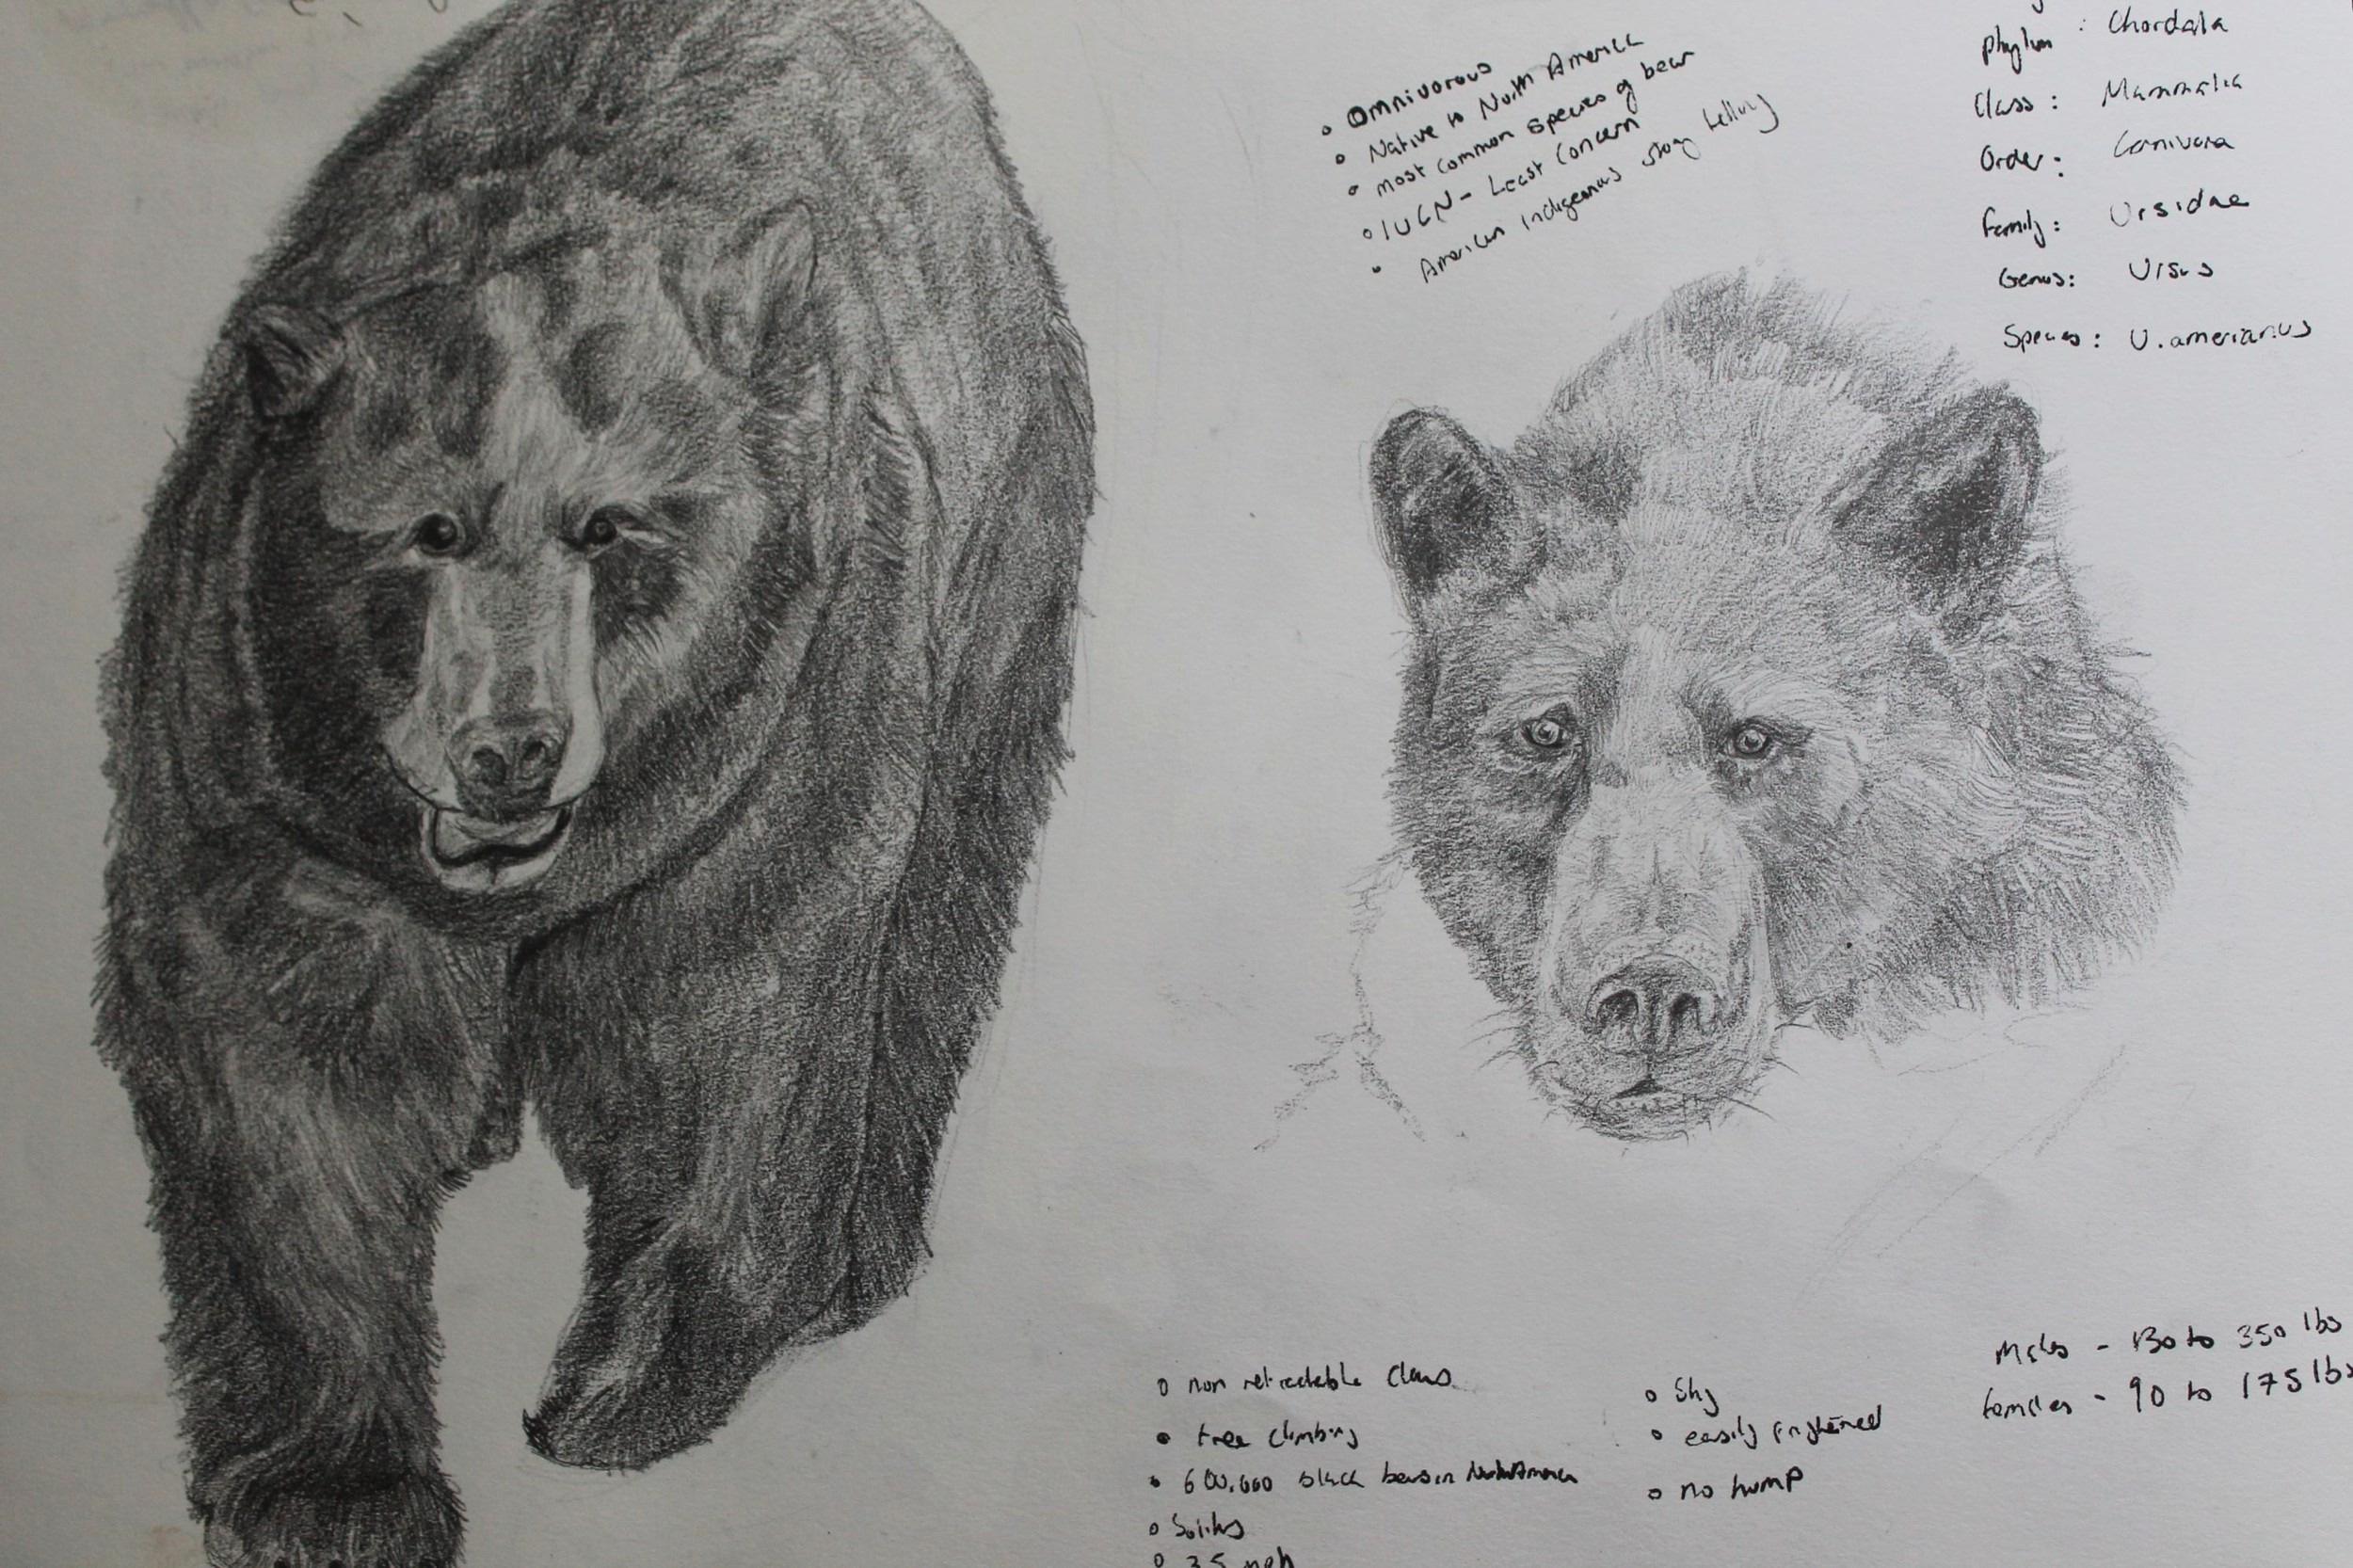 This page showing some bear drawings and a few quick research notes.